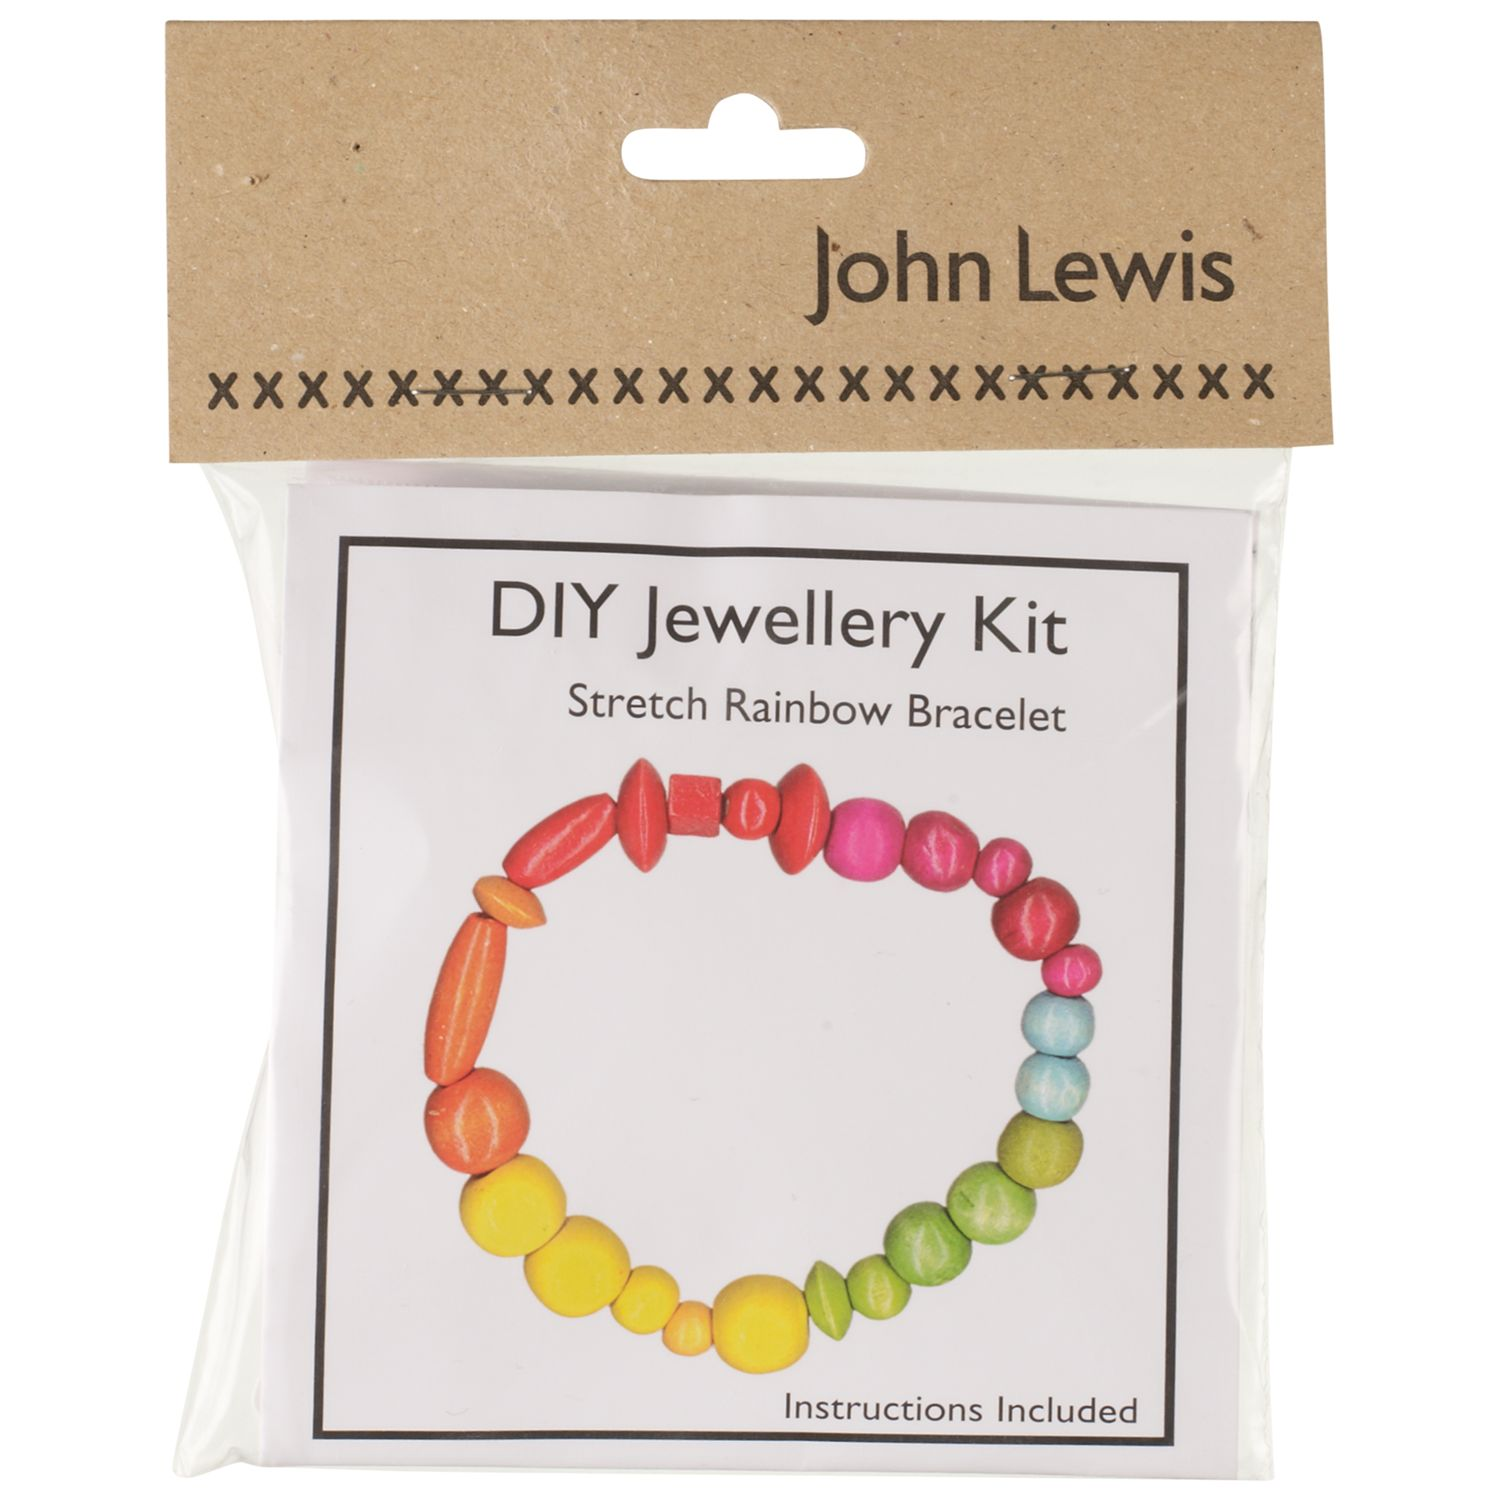 John Lewis DIY Stretch Rainbow Bracelet Jewellery Kit